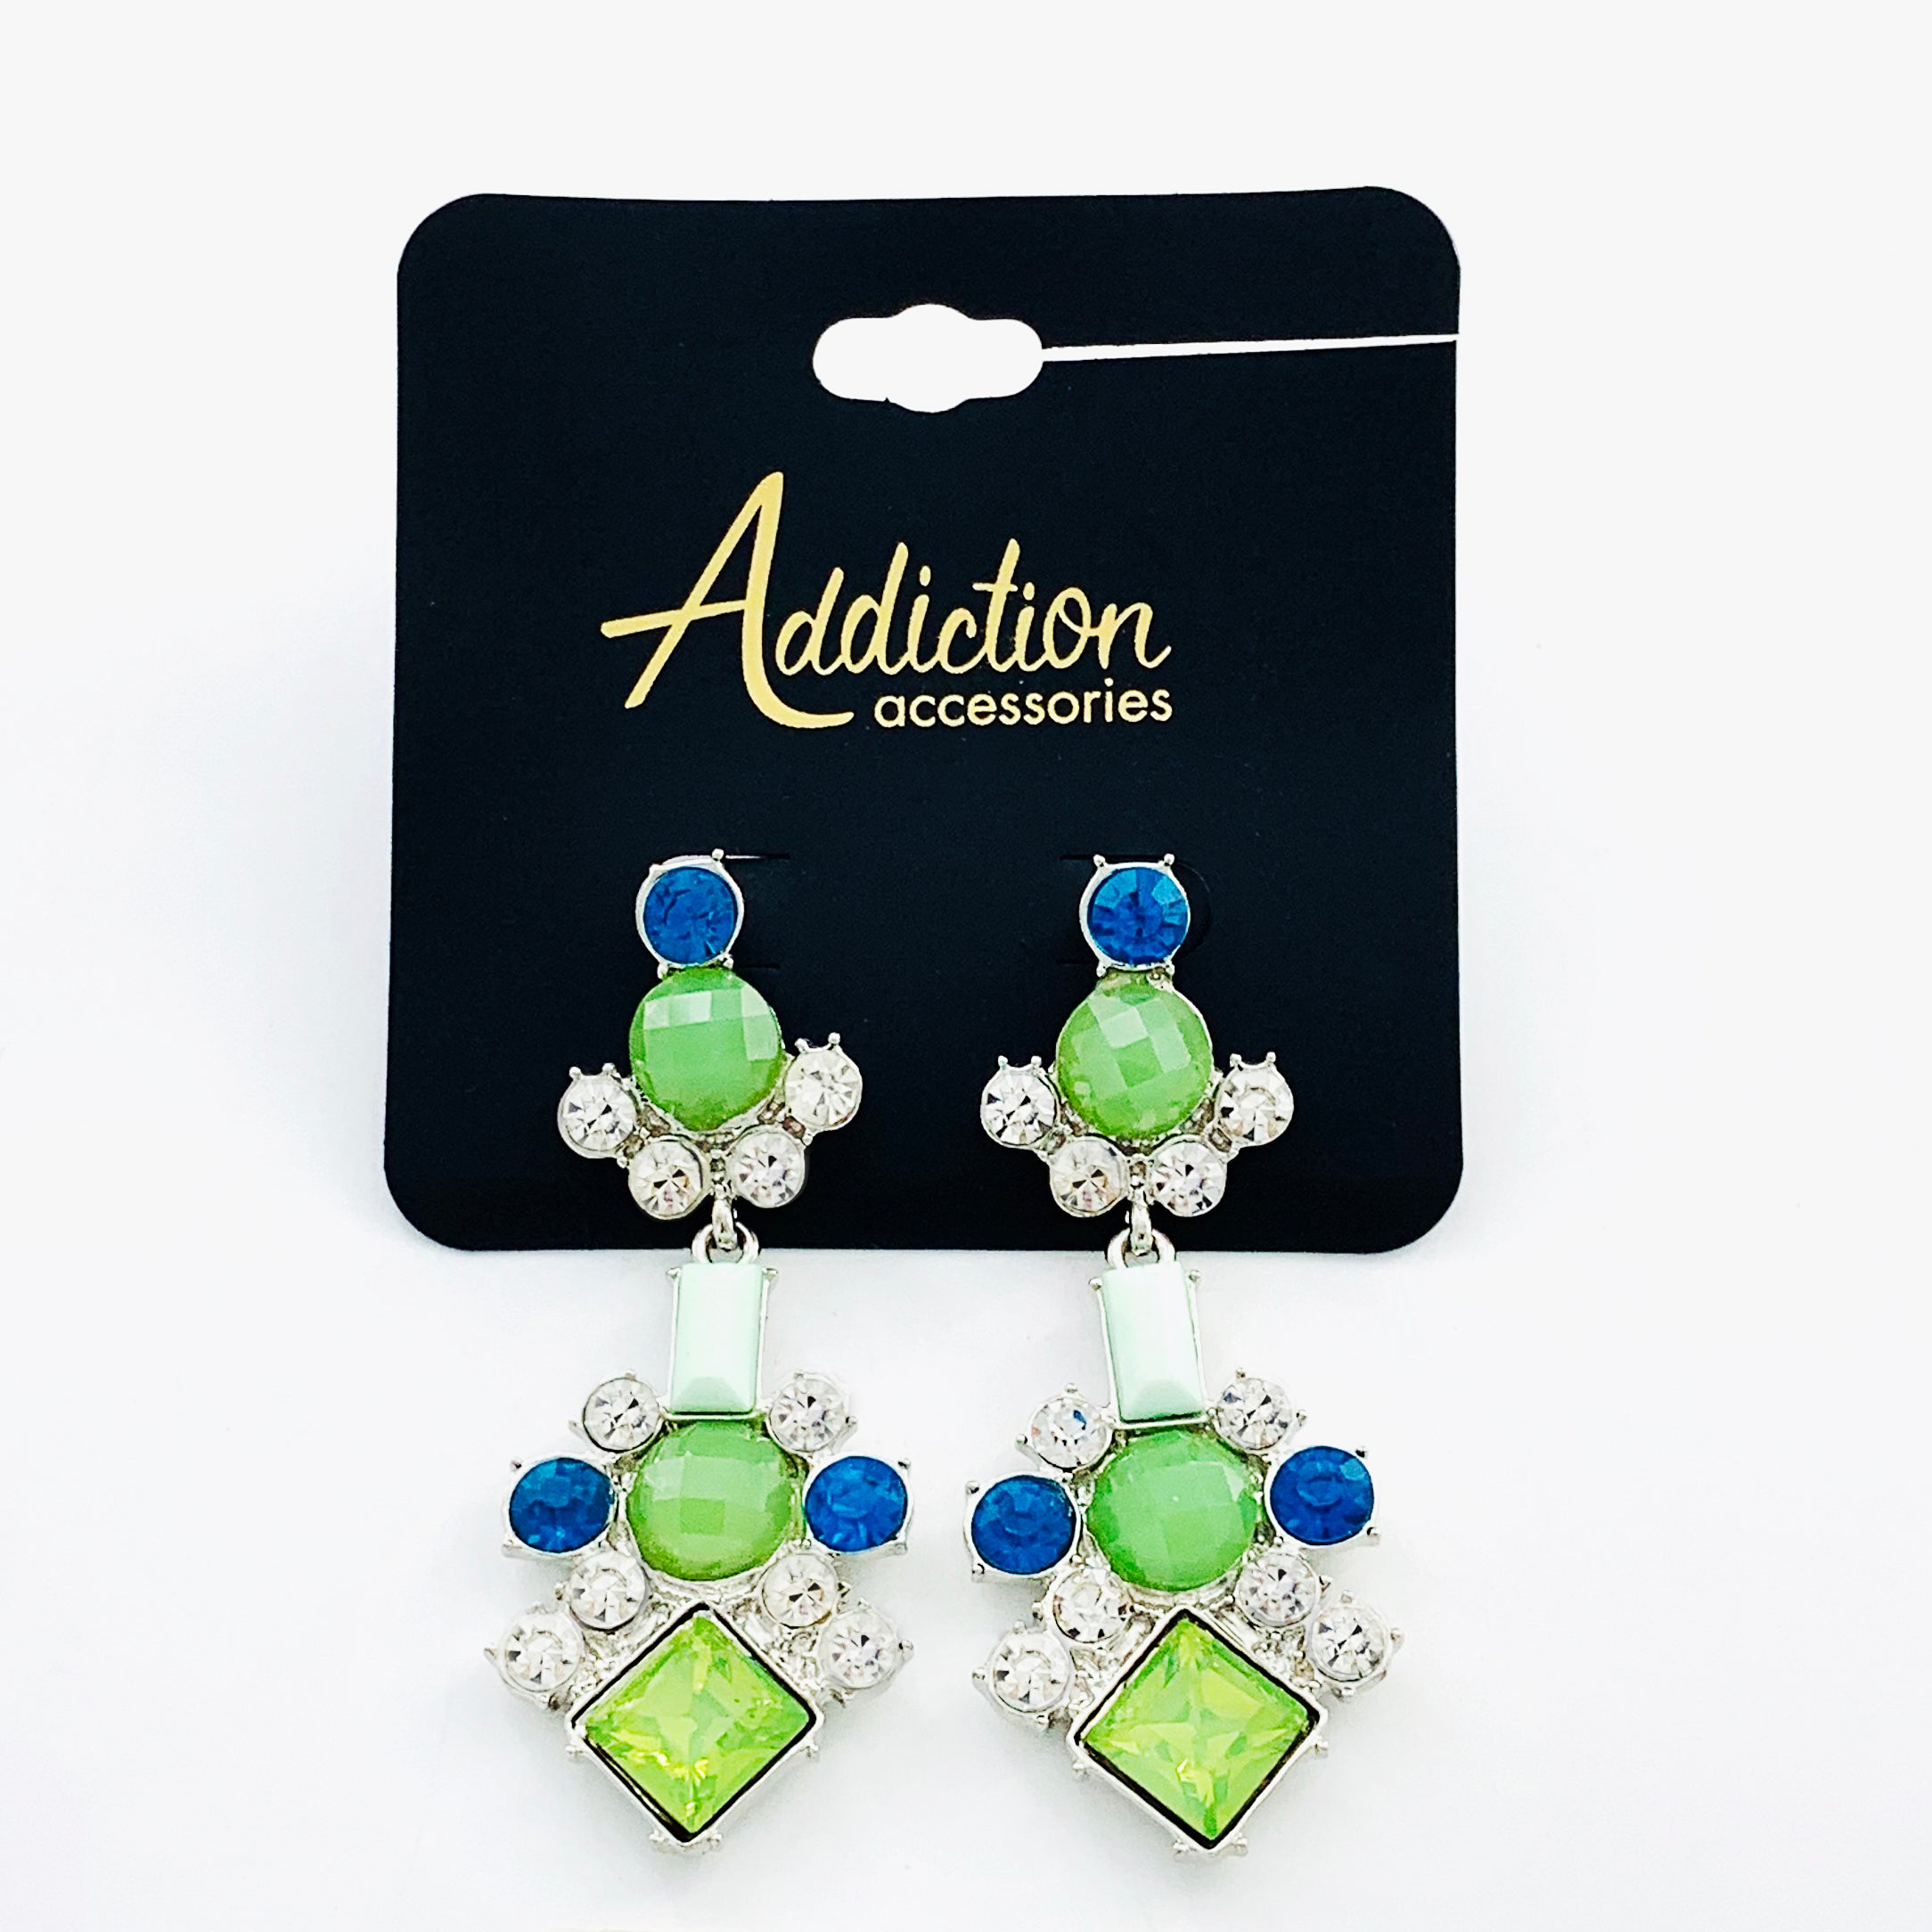 Earrings with green, blue stones and diamantes